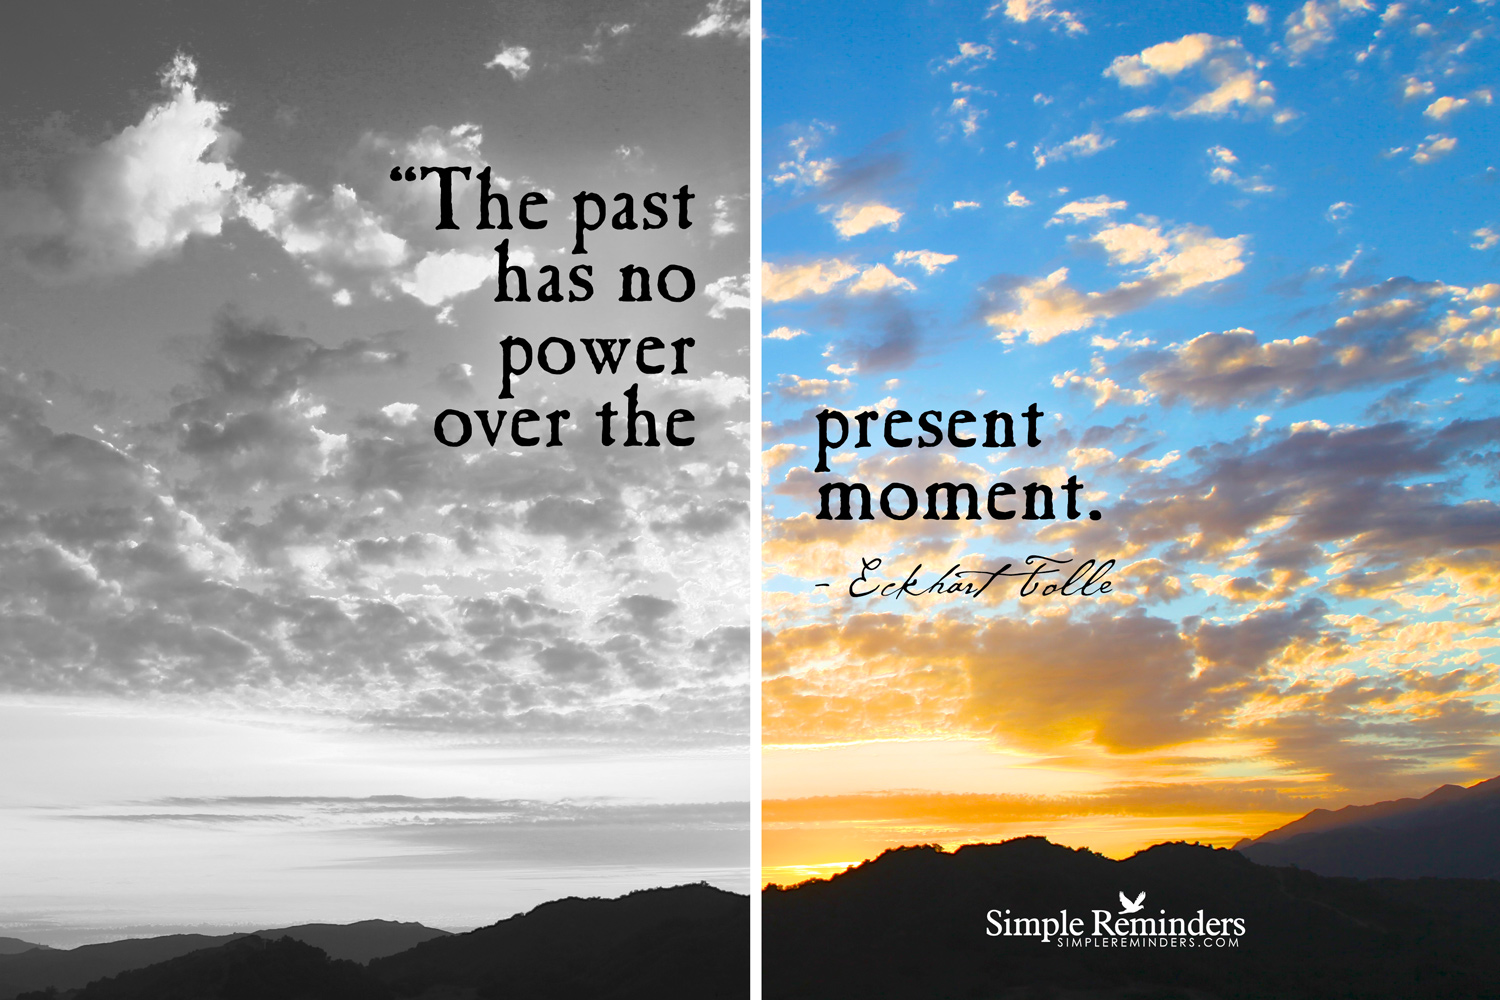 simplereminders.com-past-present-moment-tolle-withtext-displayres